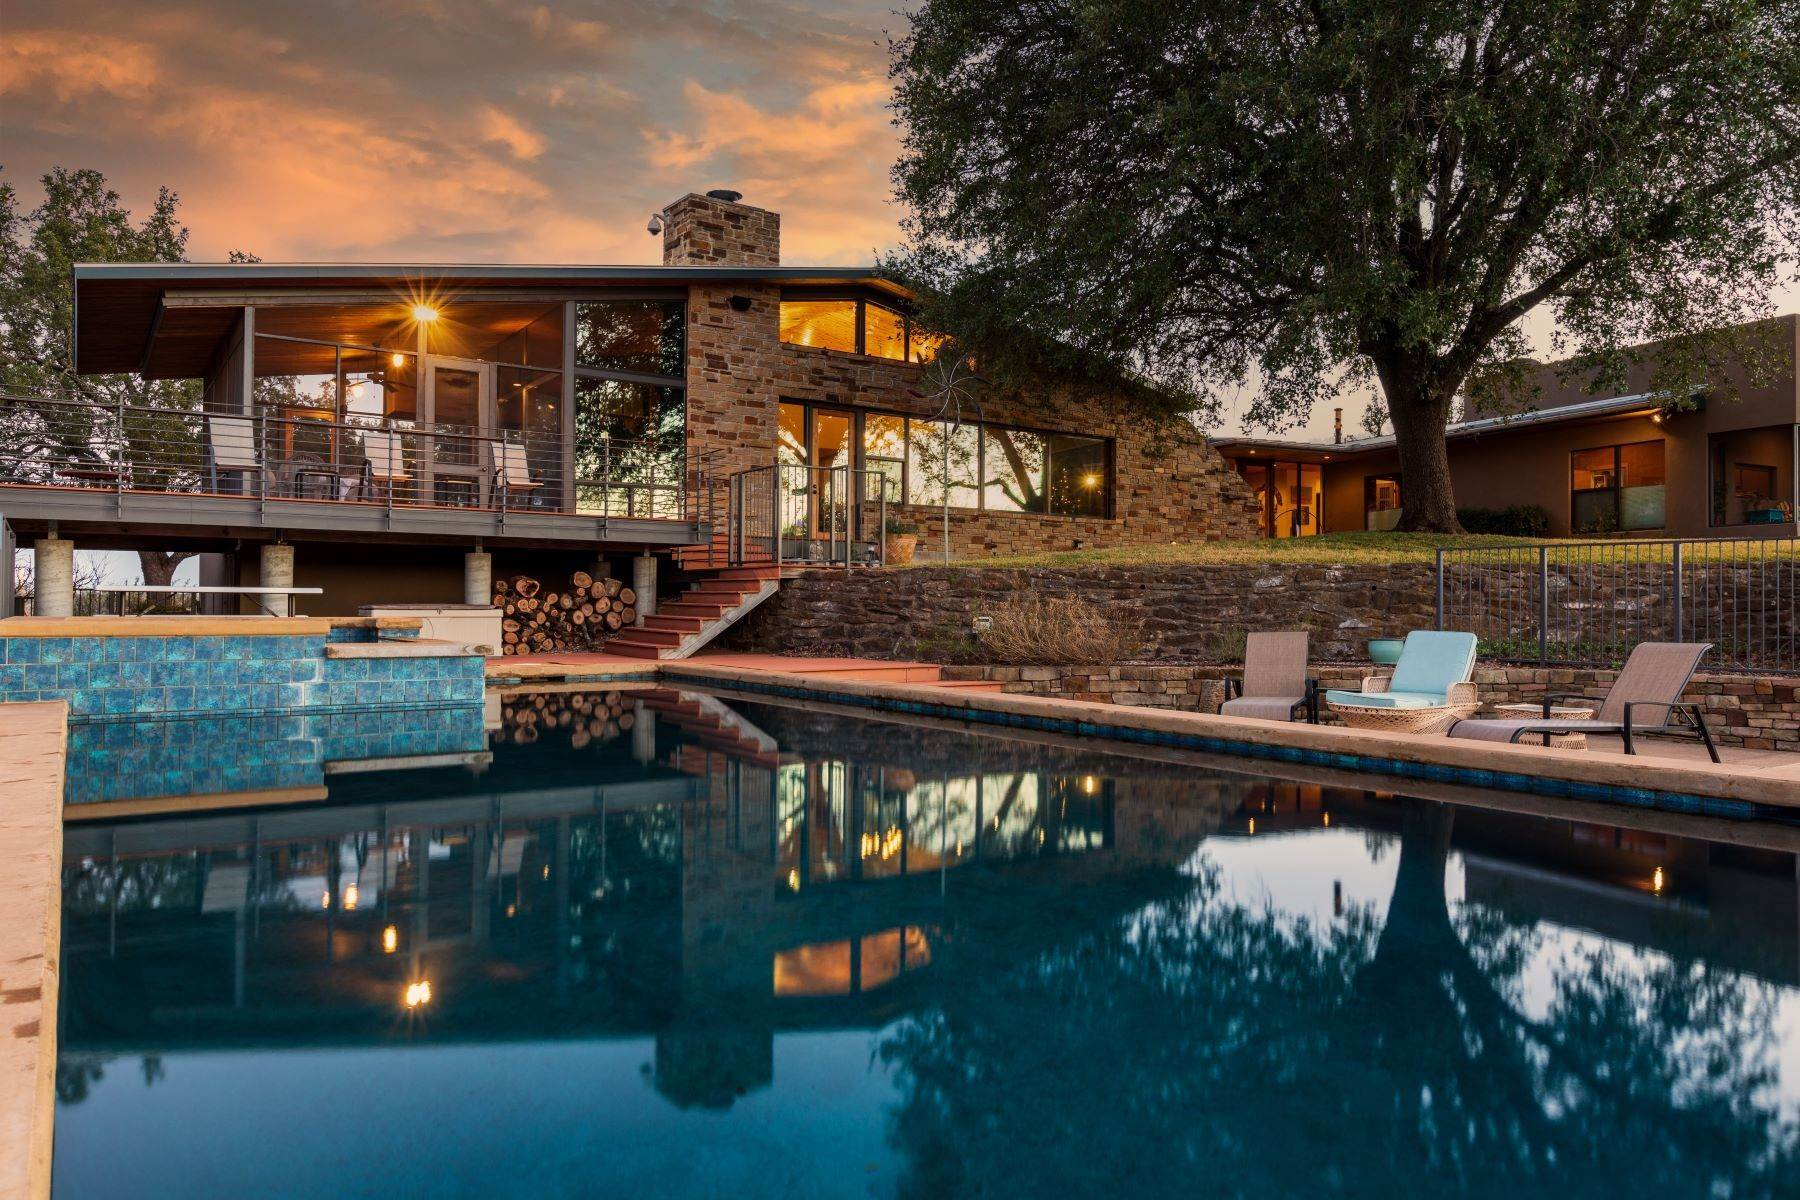 Single Family Homes for Sale at Impeccable Estate Overlooking the Hill Country 1410 Ischar Street Mason, Texas 76856 United States